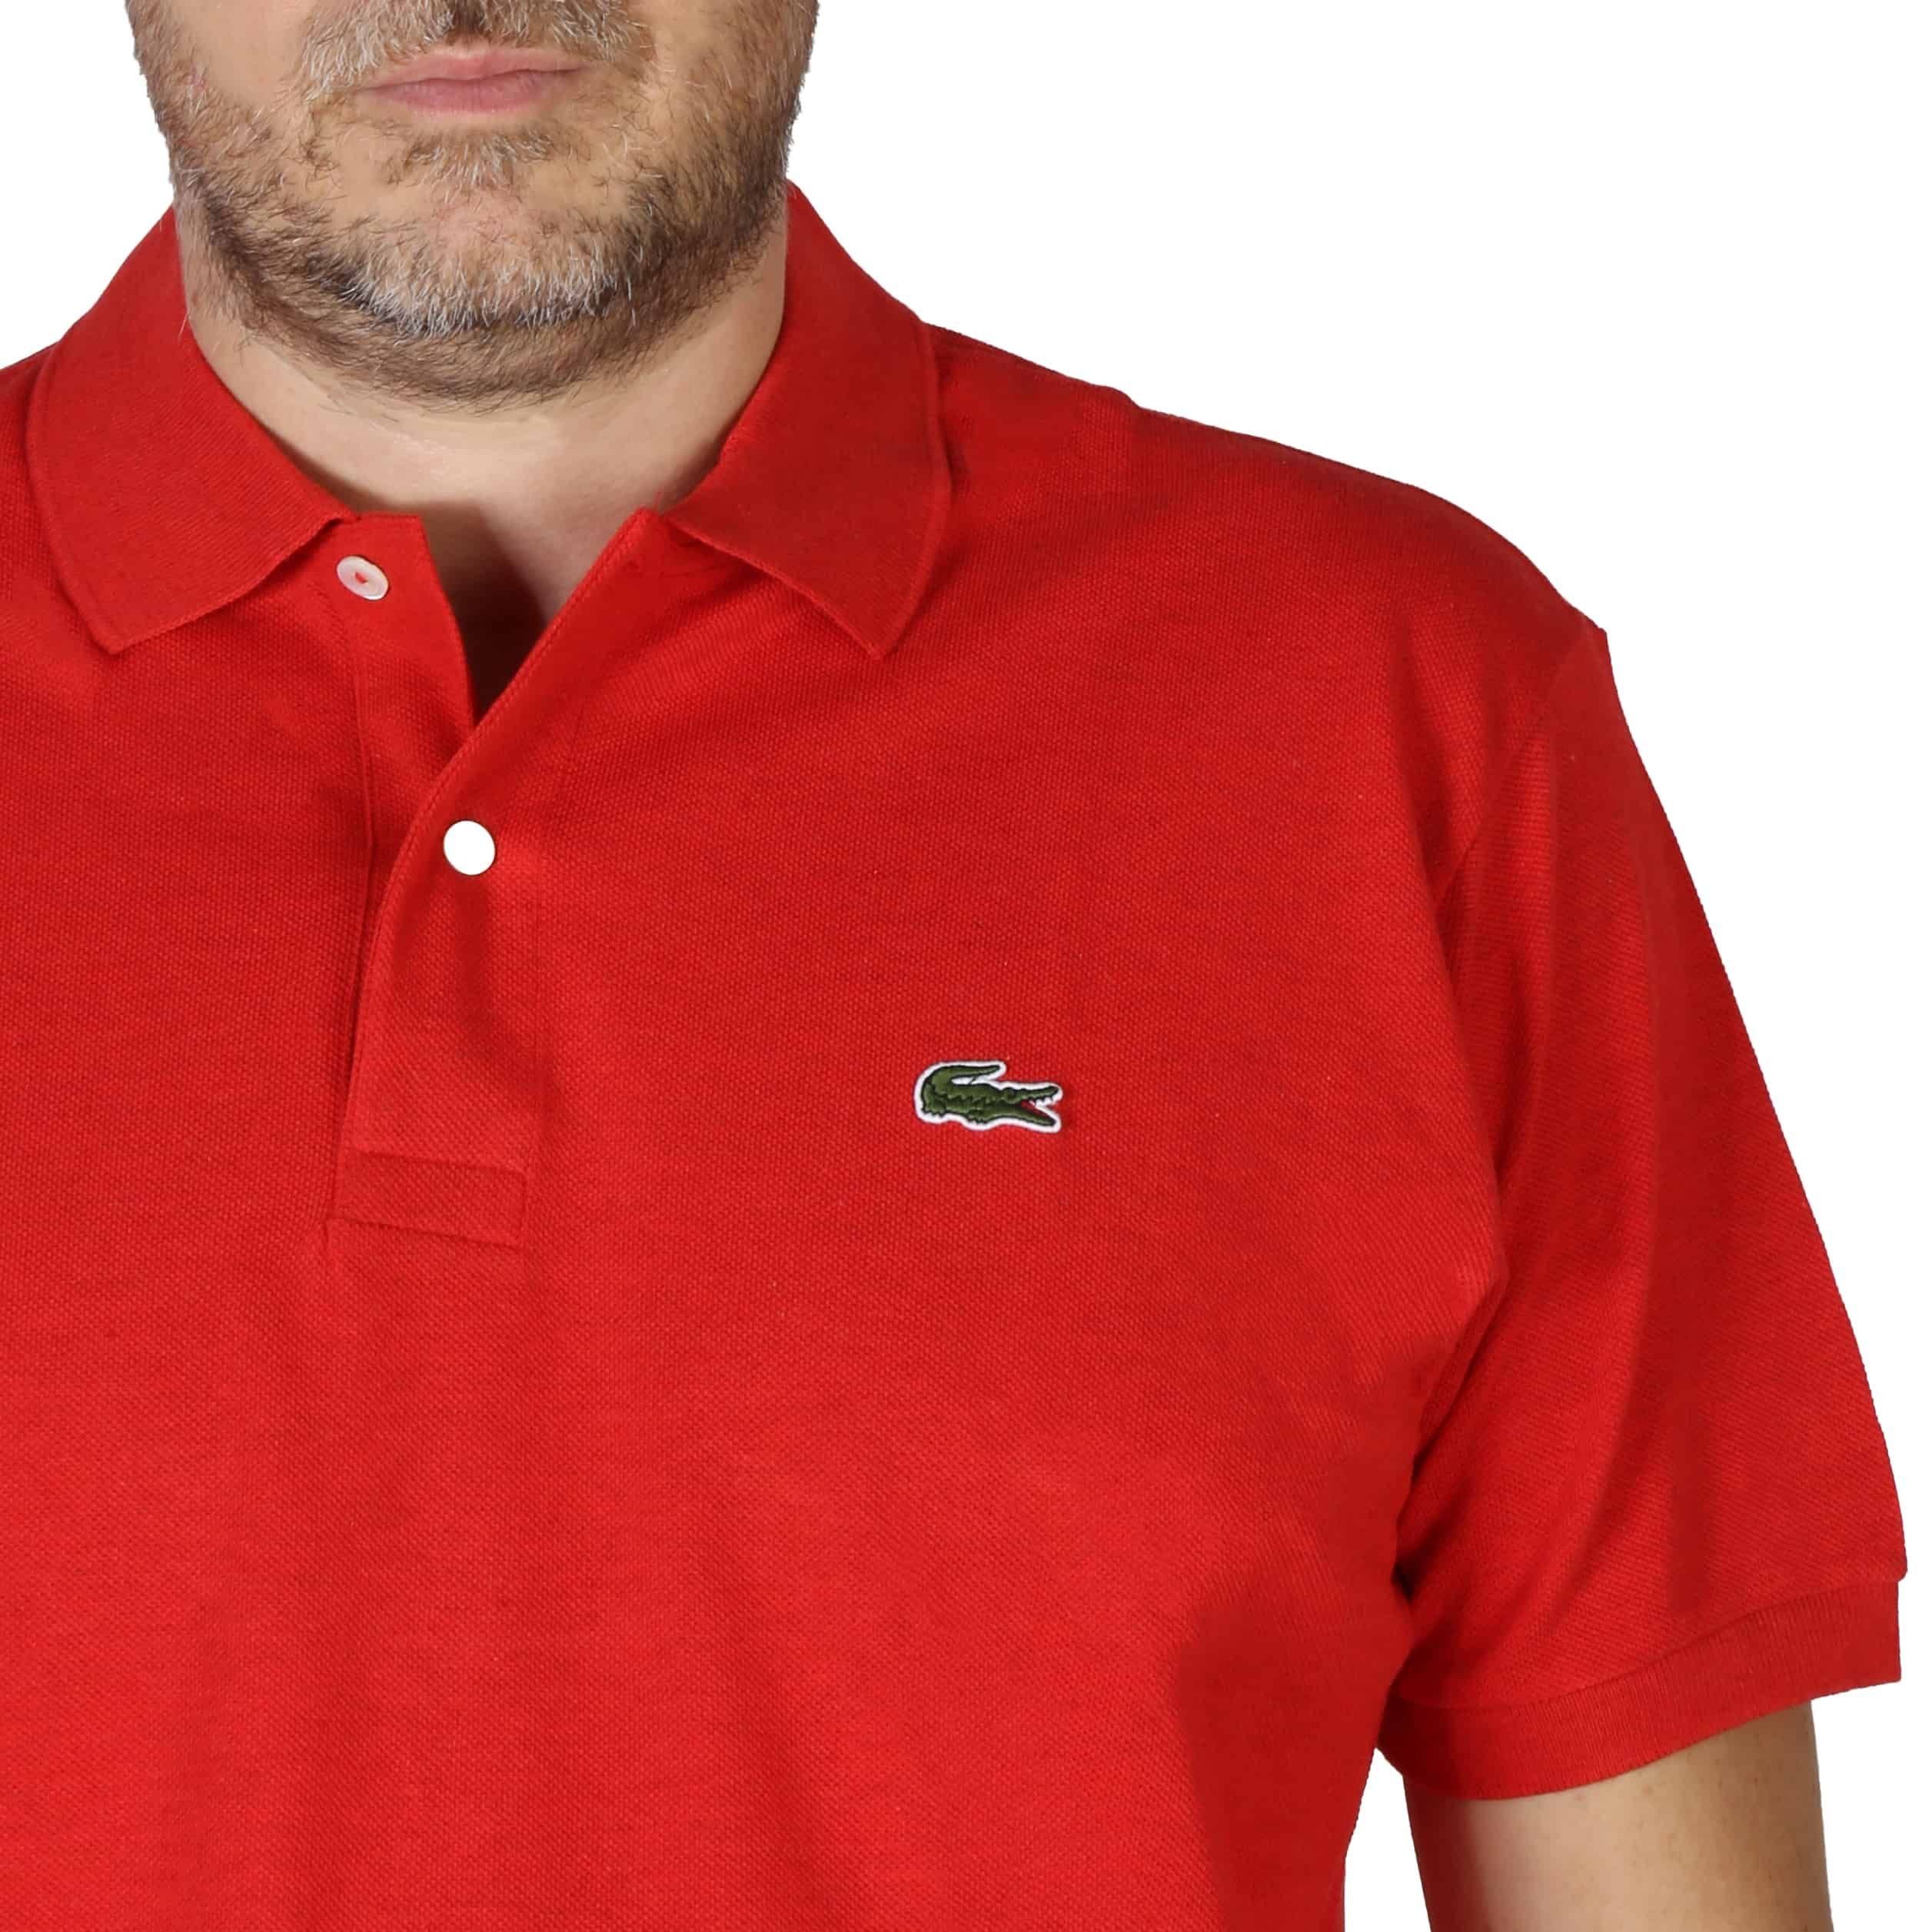 Bekleidung Lacoste – L1264 – Rot